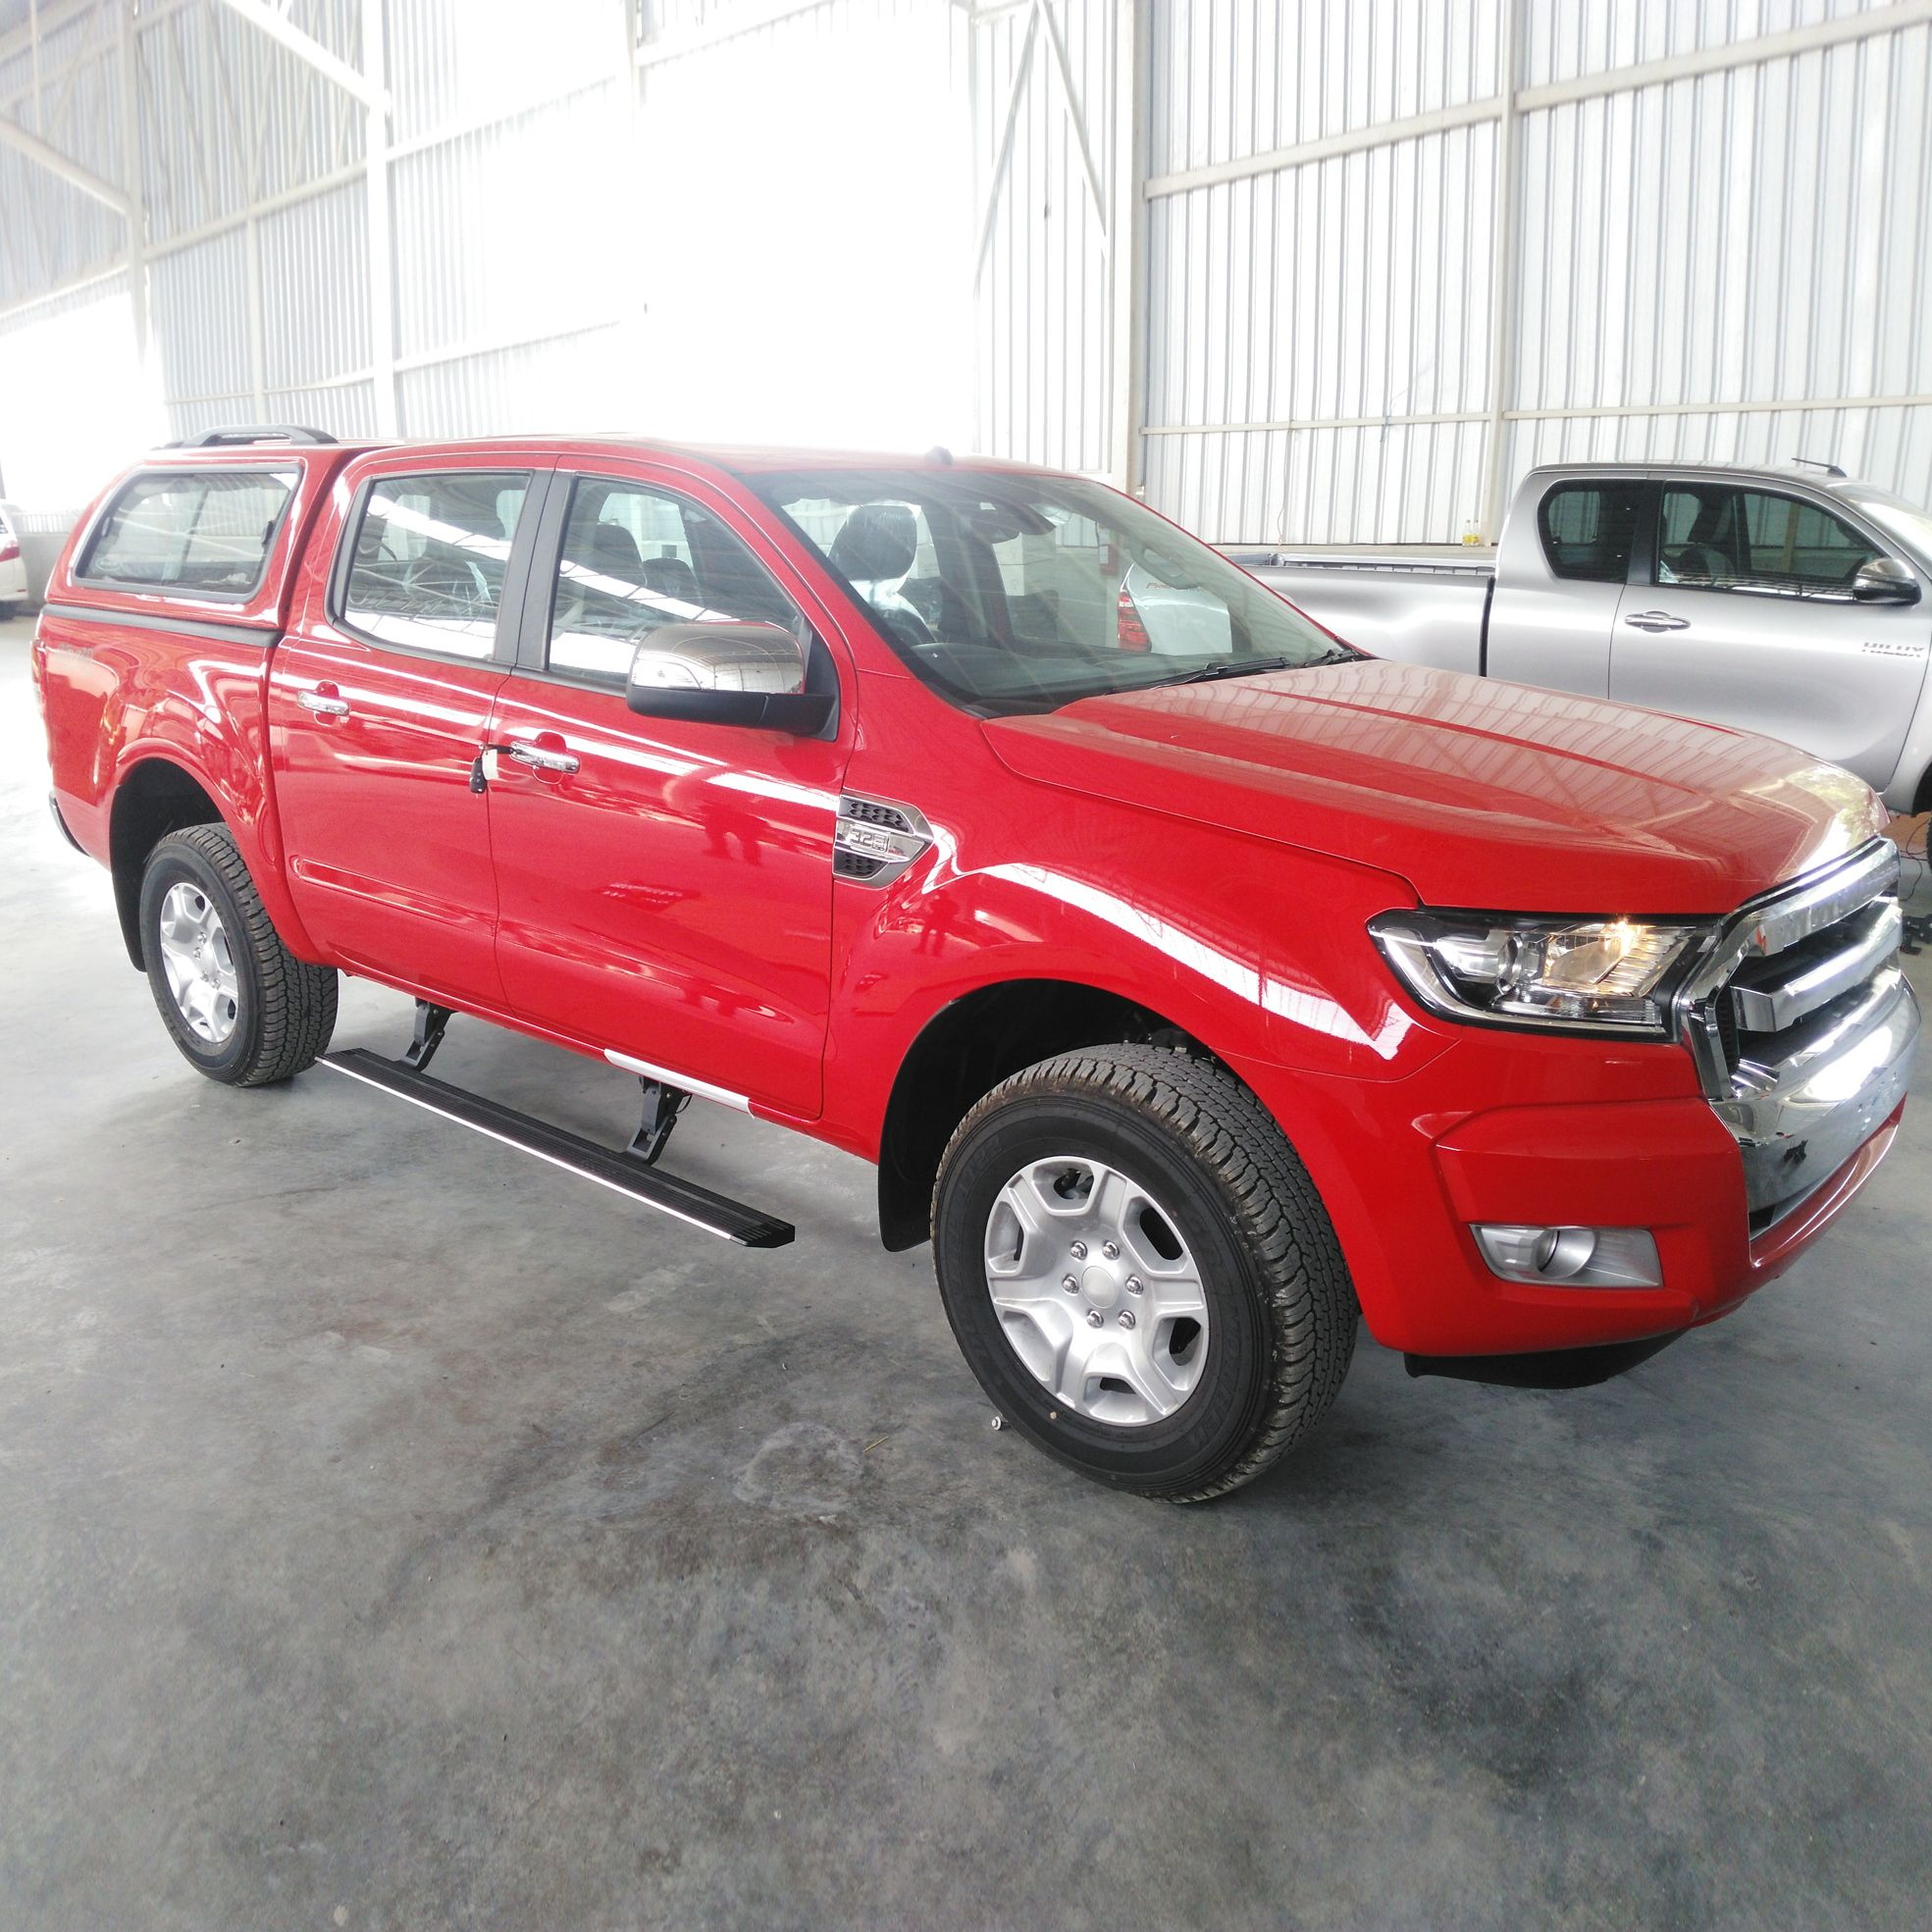 Auto Accessory 4x4 Electric Side Step Running Board For Ford Ranger Whatsapp Wechat Mp 86 18662536356 Http U6 Gg Dj Car Accessories Ford Ranger Electricity